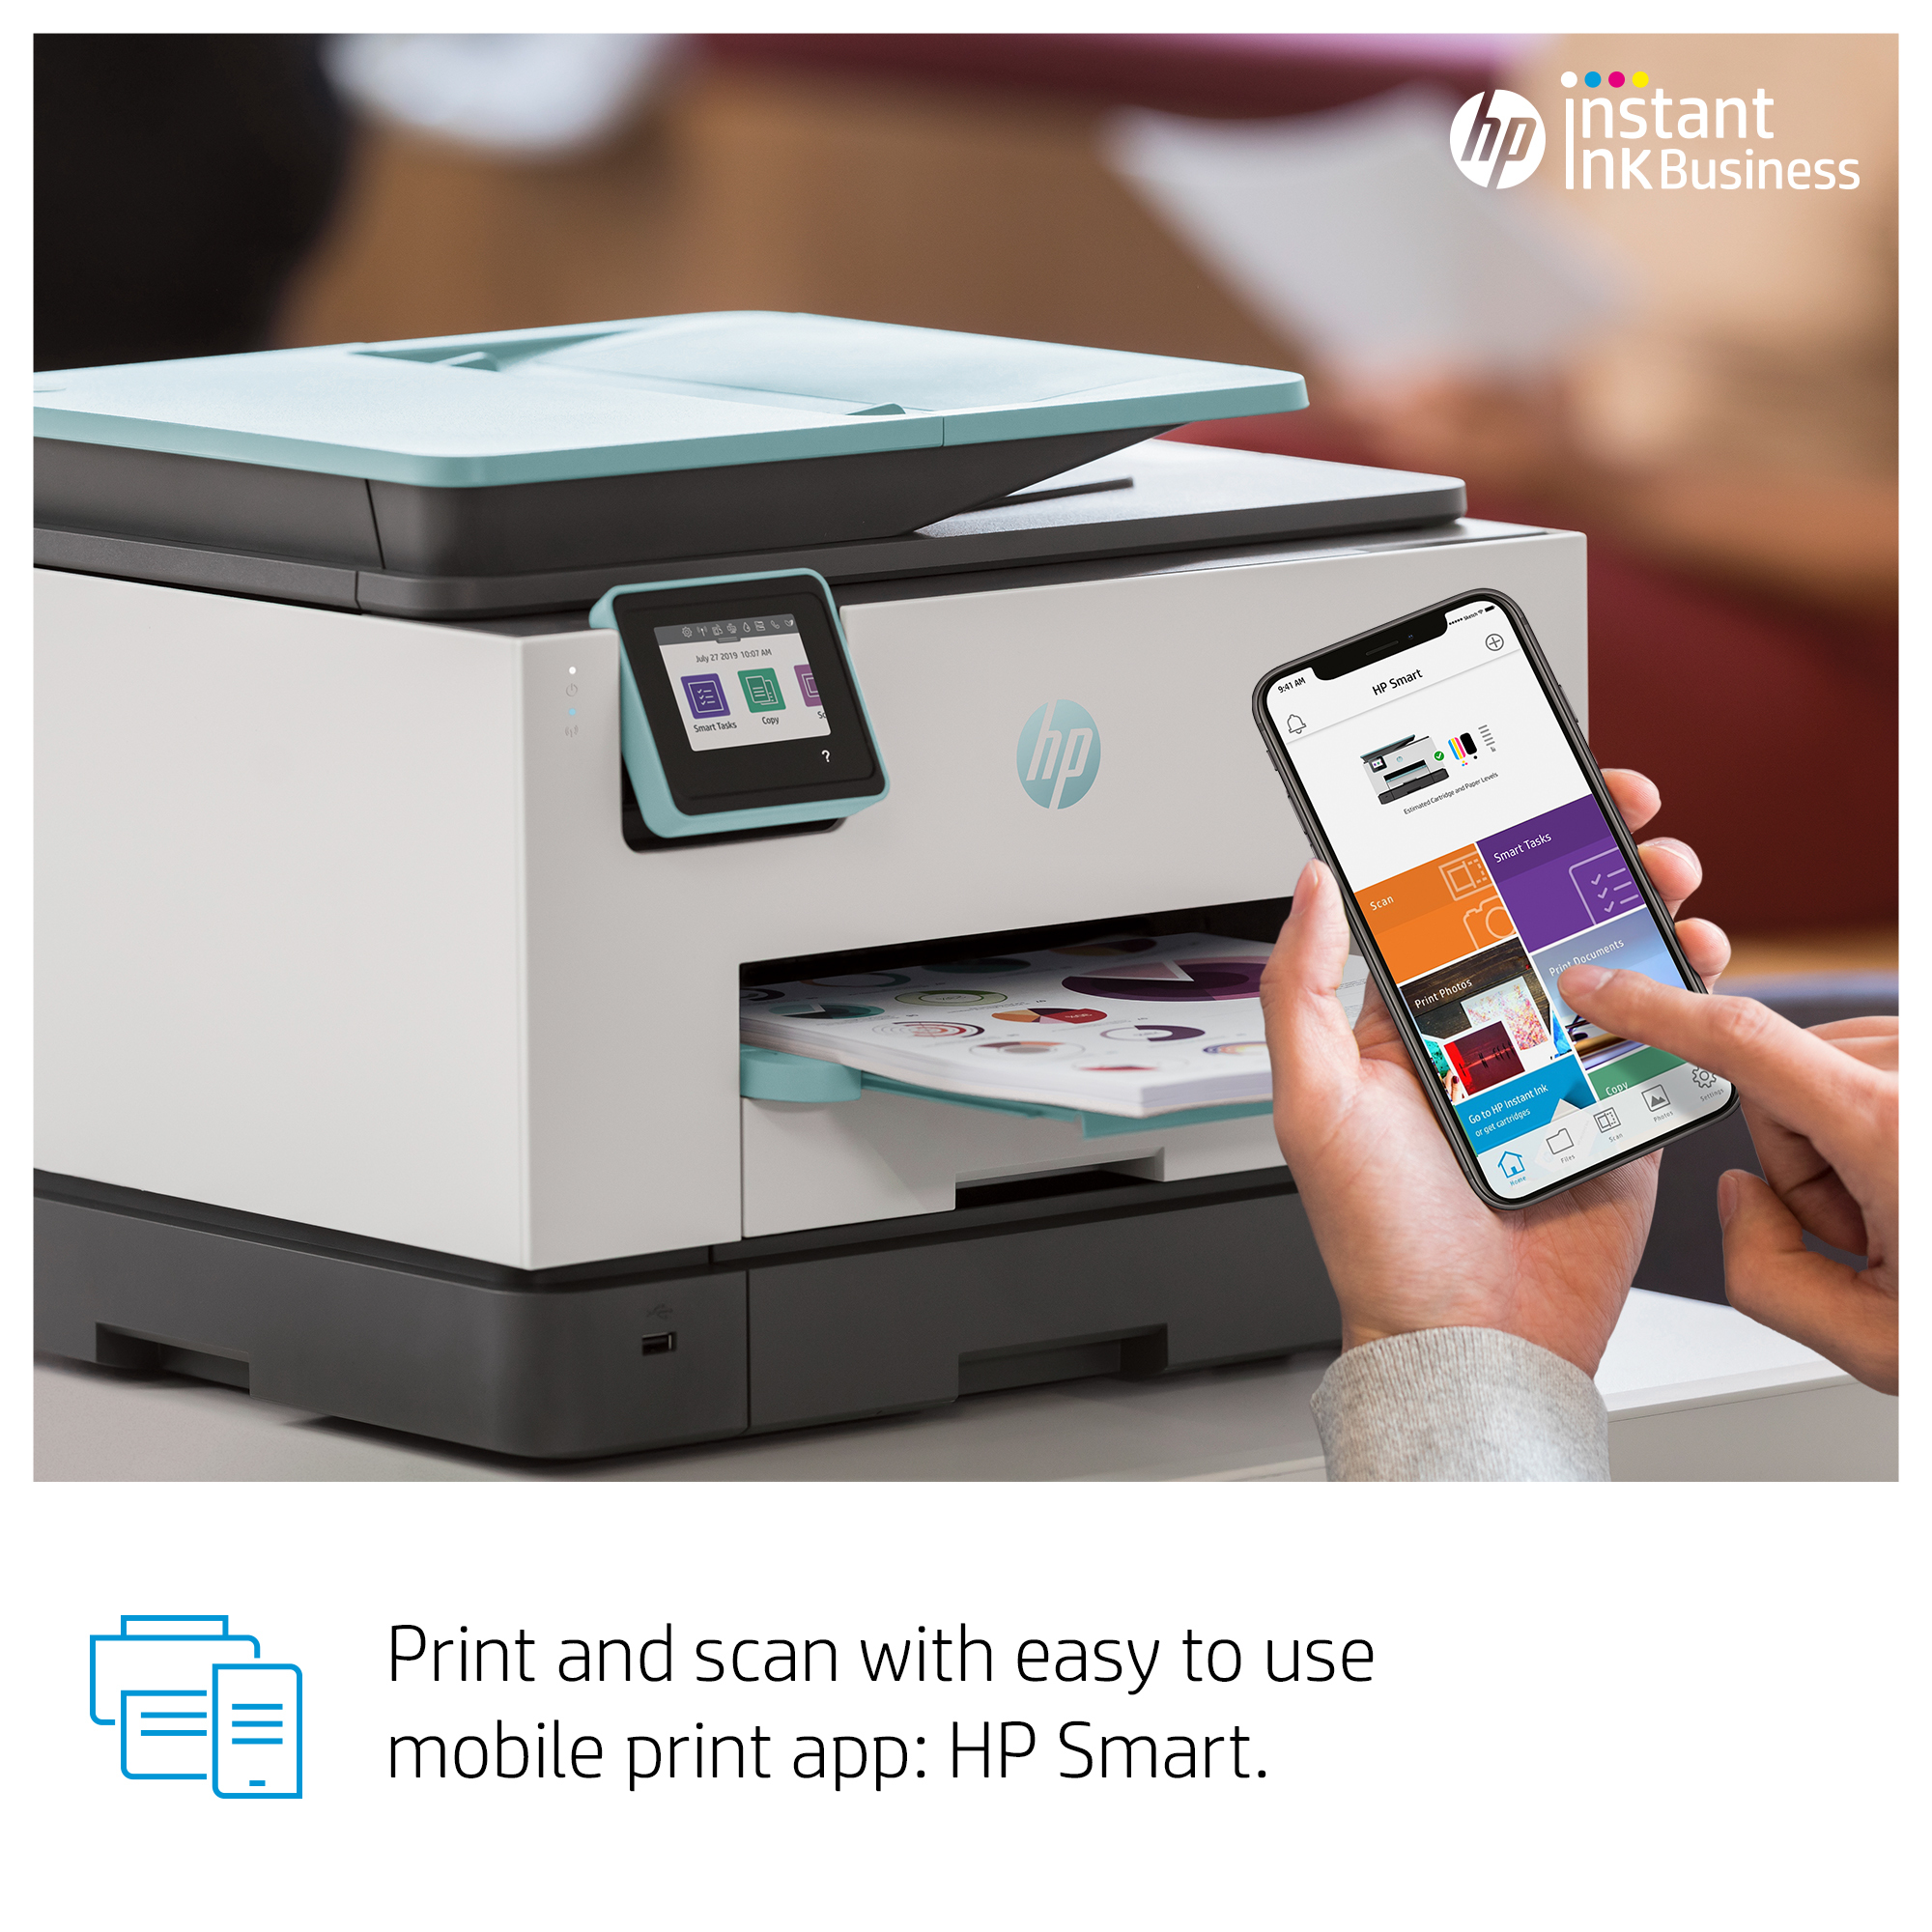 HP OfficeJet Pro 9025 All-in-one wireless printer Print,Scan,Copy from your  phone, Instant Ink ready & voice activated (works with Alexa and Google